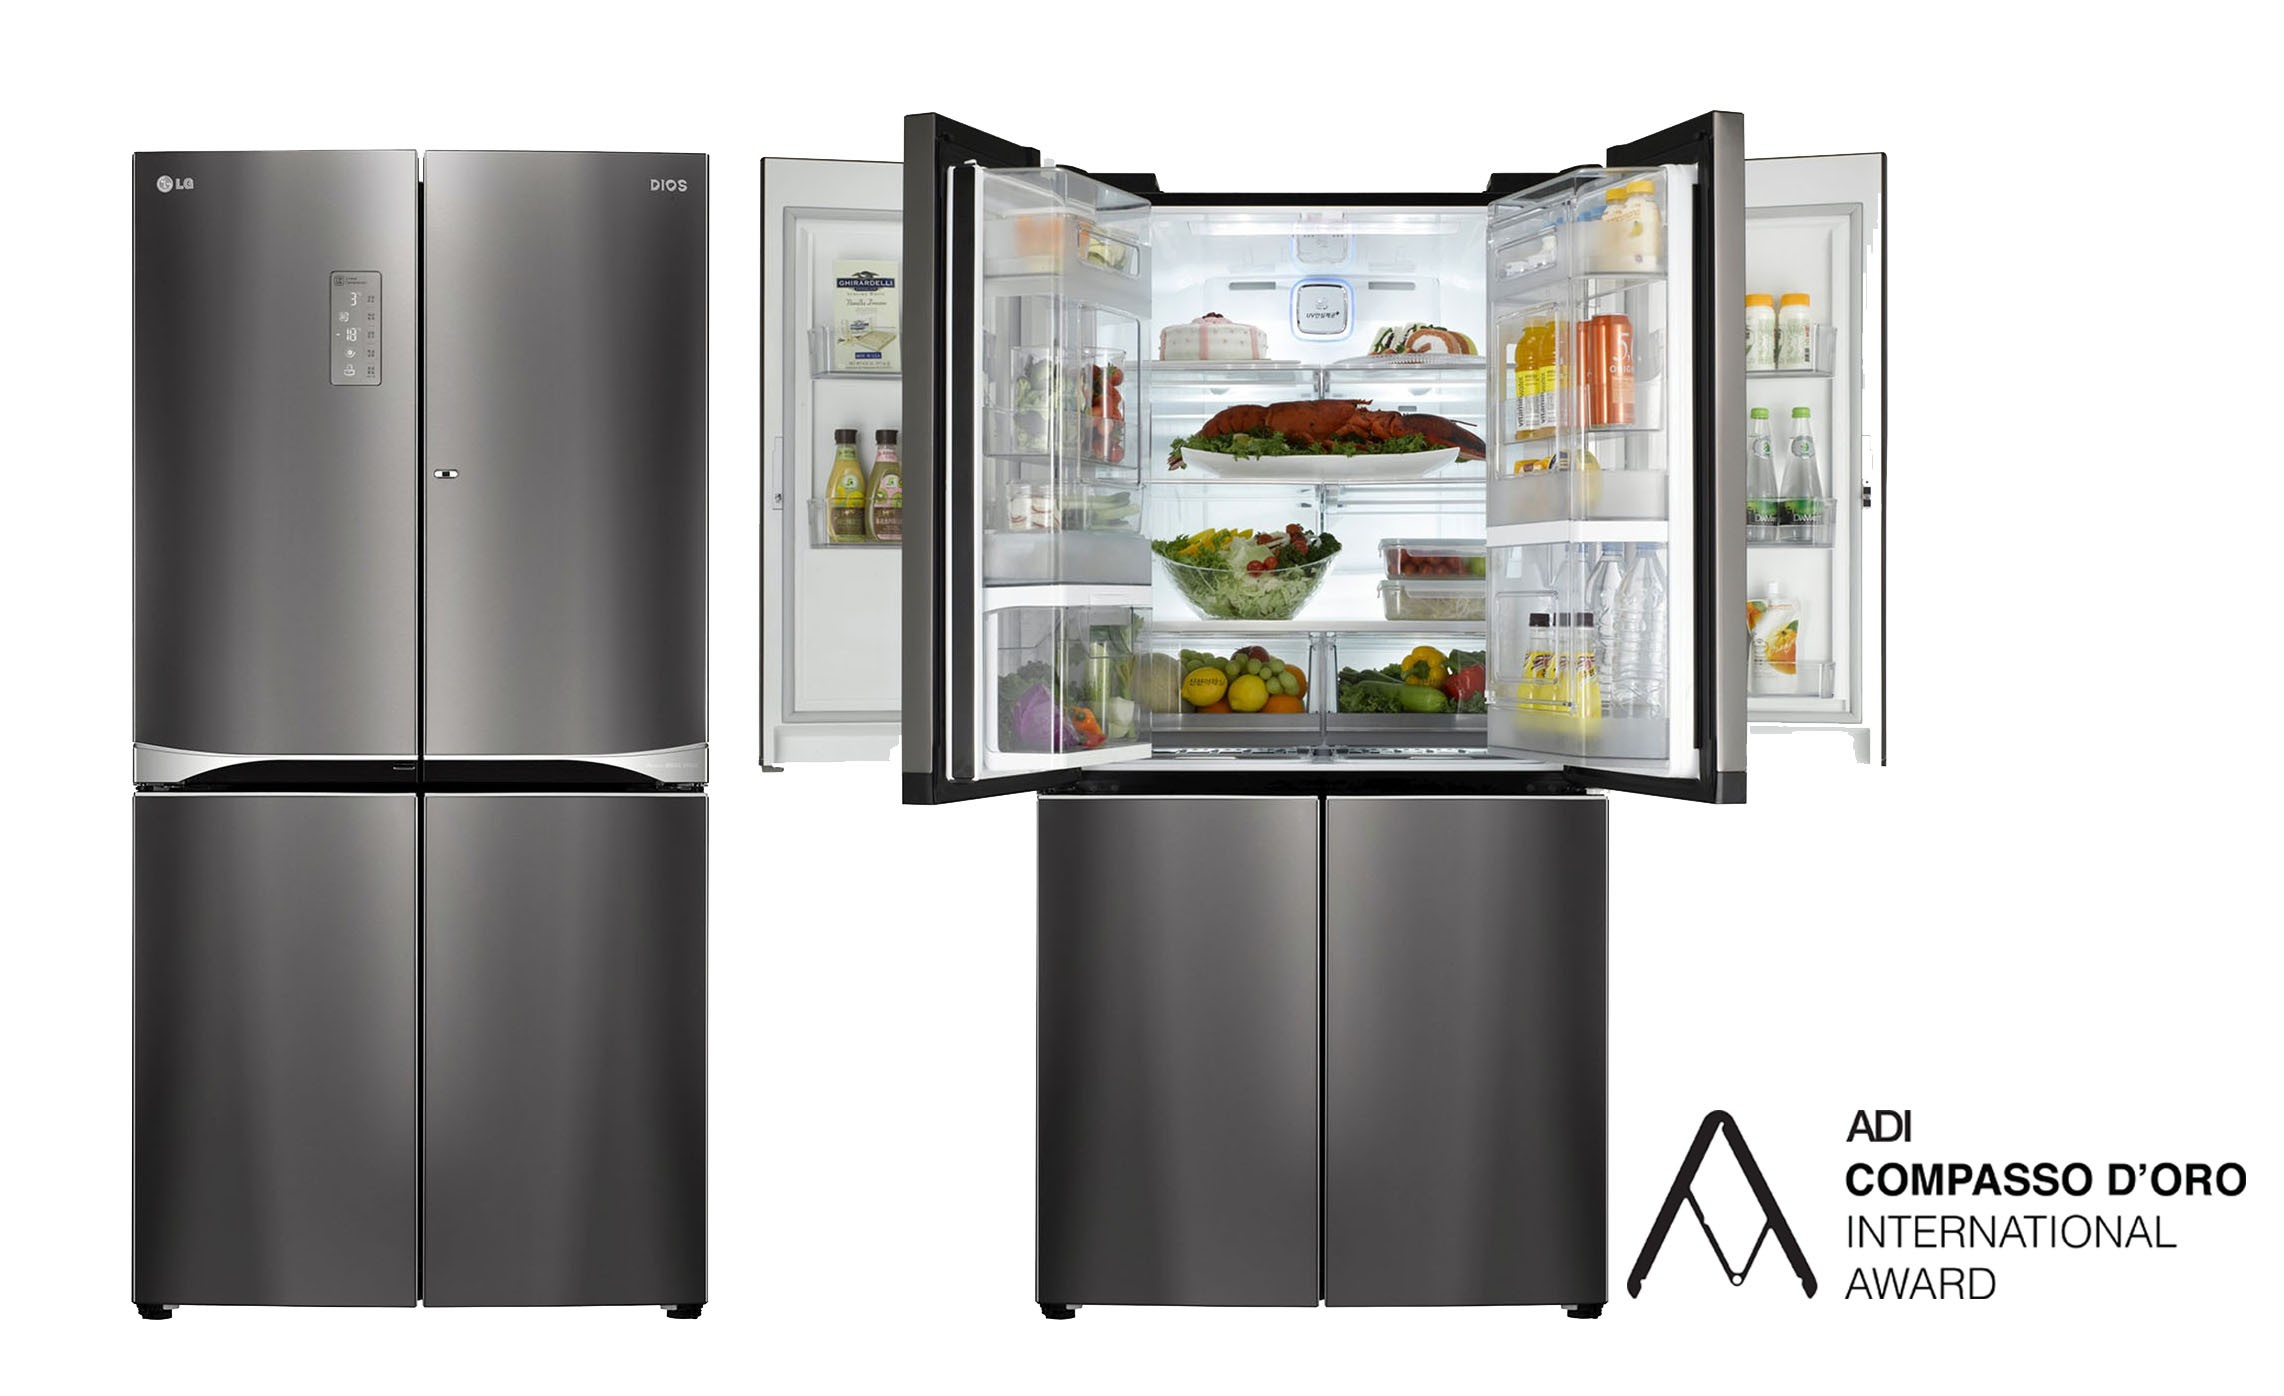 Two LG double Door-in-Door refrigerators with Compasso d'Oro International Award logo. Left one is closed and right one's upper parts are opened.